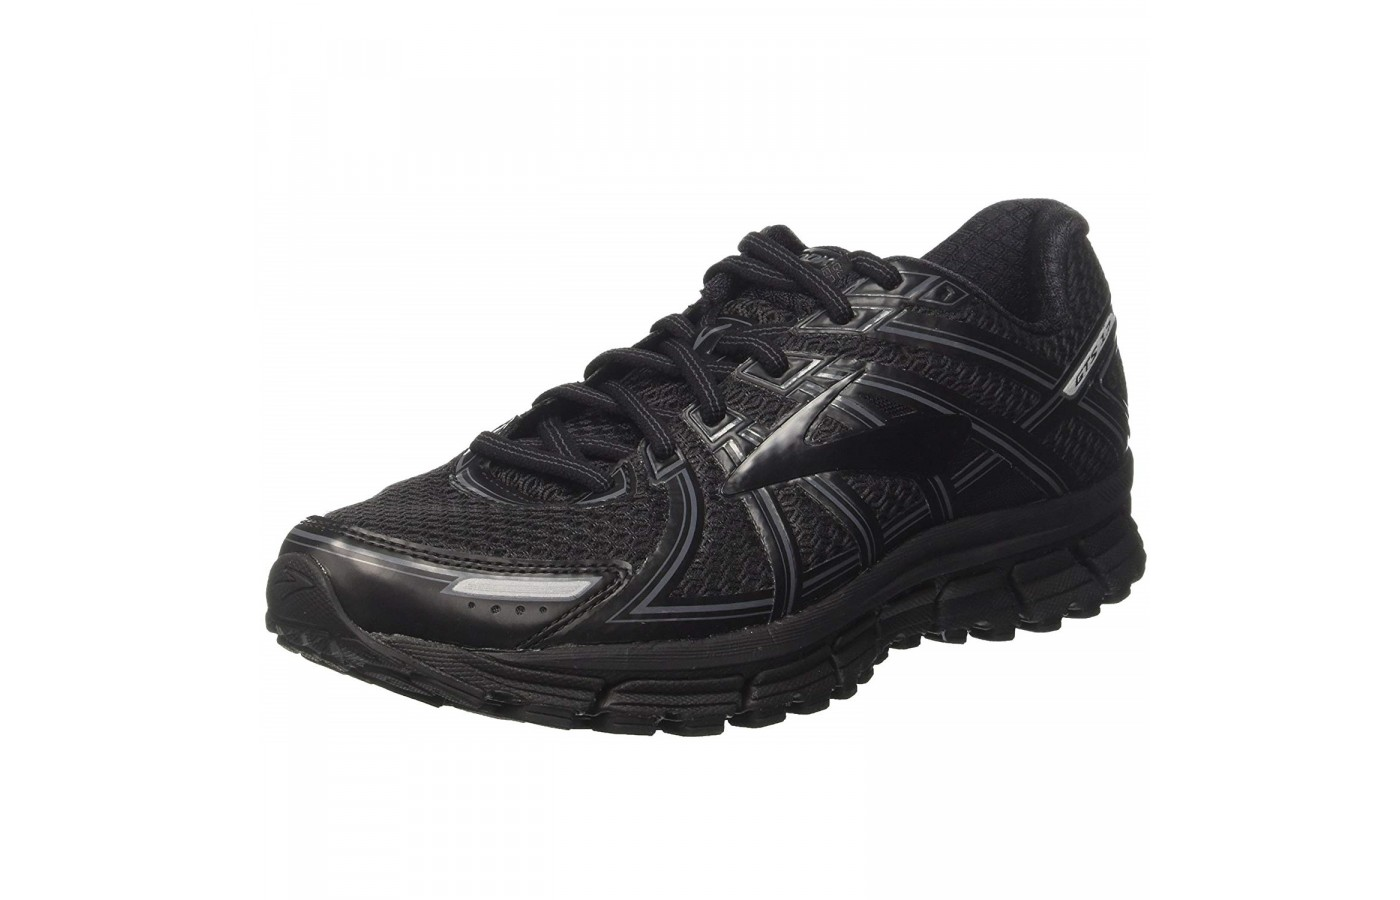 The Brooks Adrenaline GTS 17 offers a mesh upper in order to provide superior breathability.